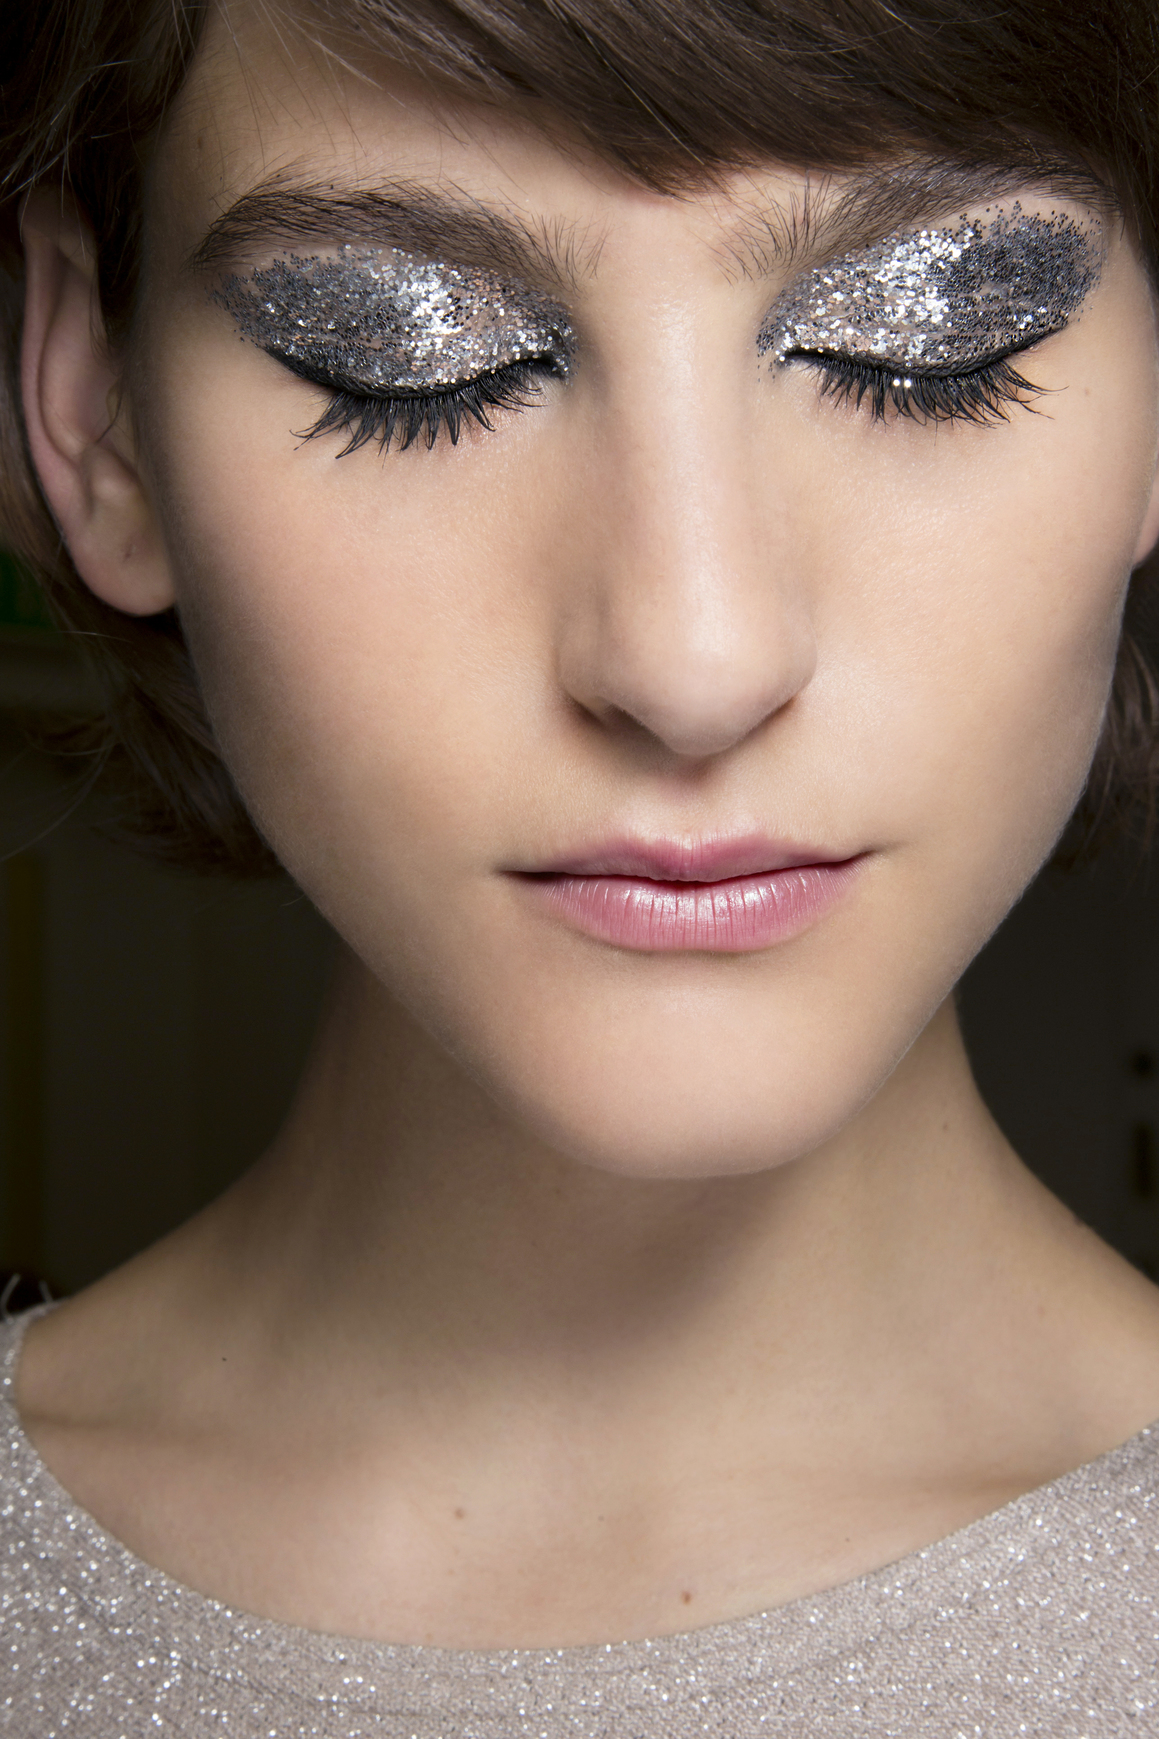 New Years Eve Eye Makeup Looks You Have To See Stylecaster